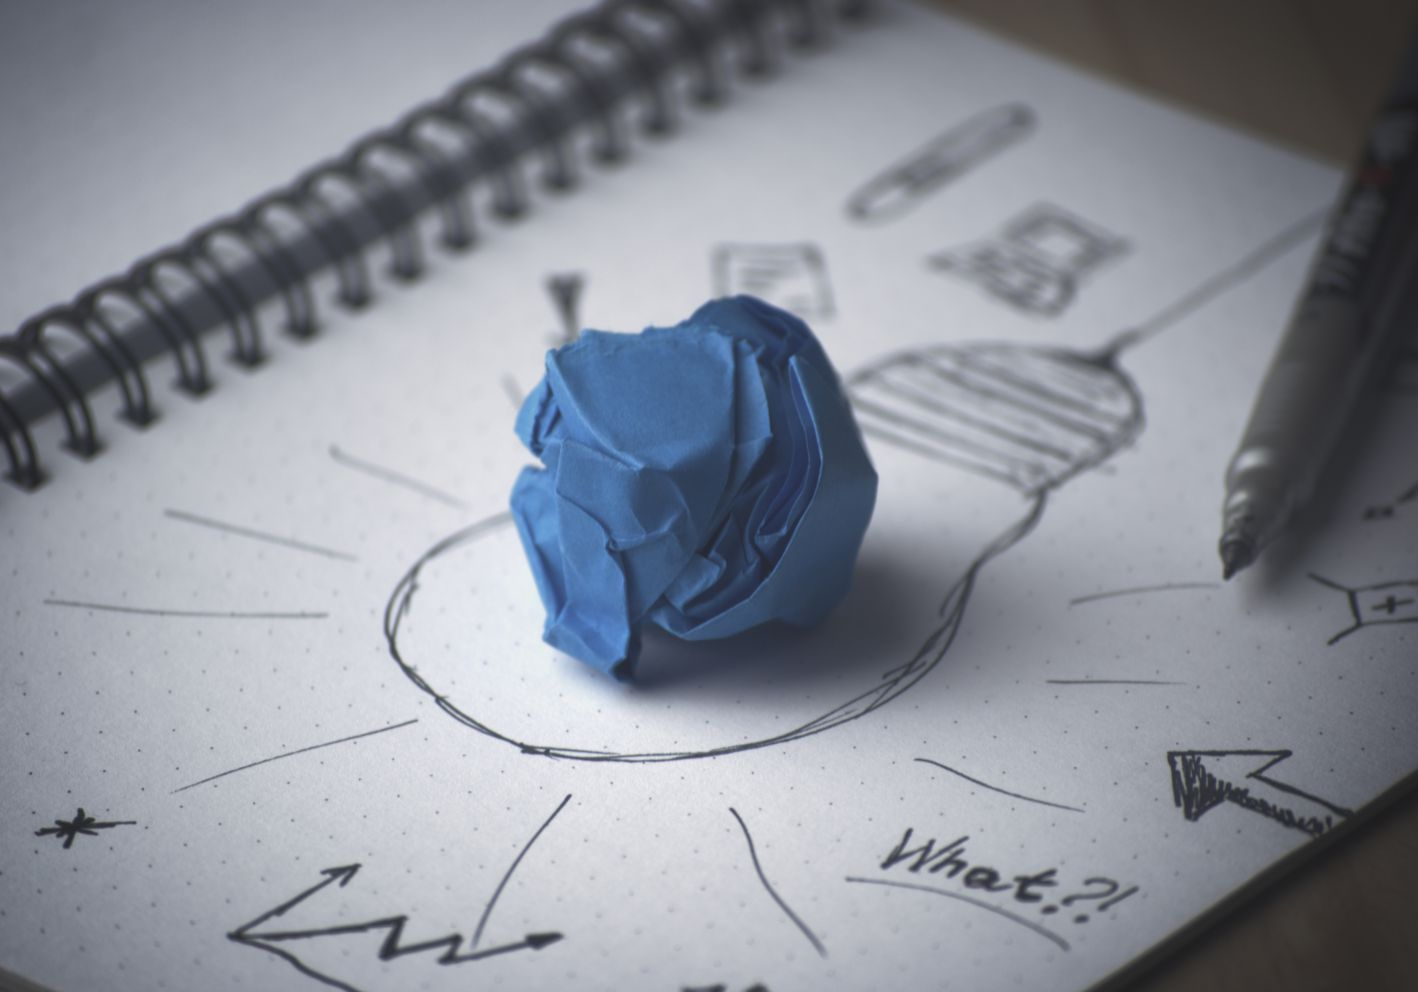 Perth web design - engineer your online business ideas